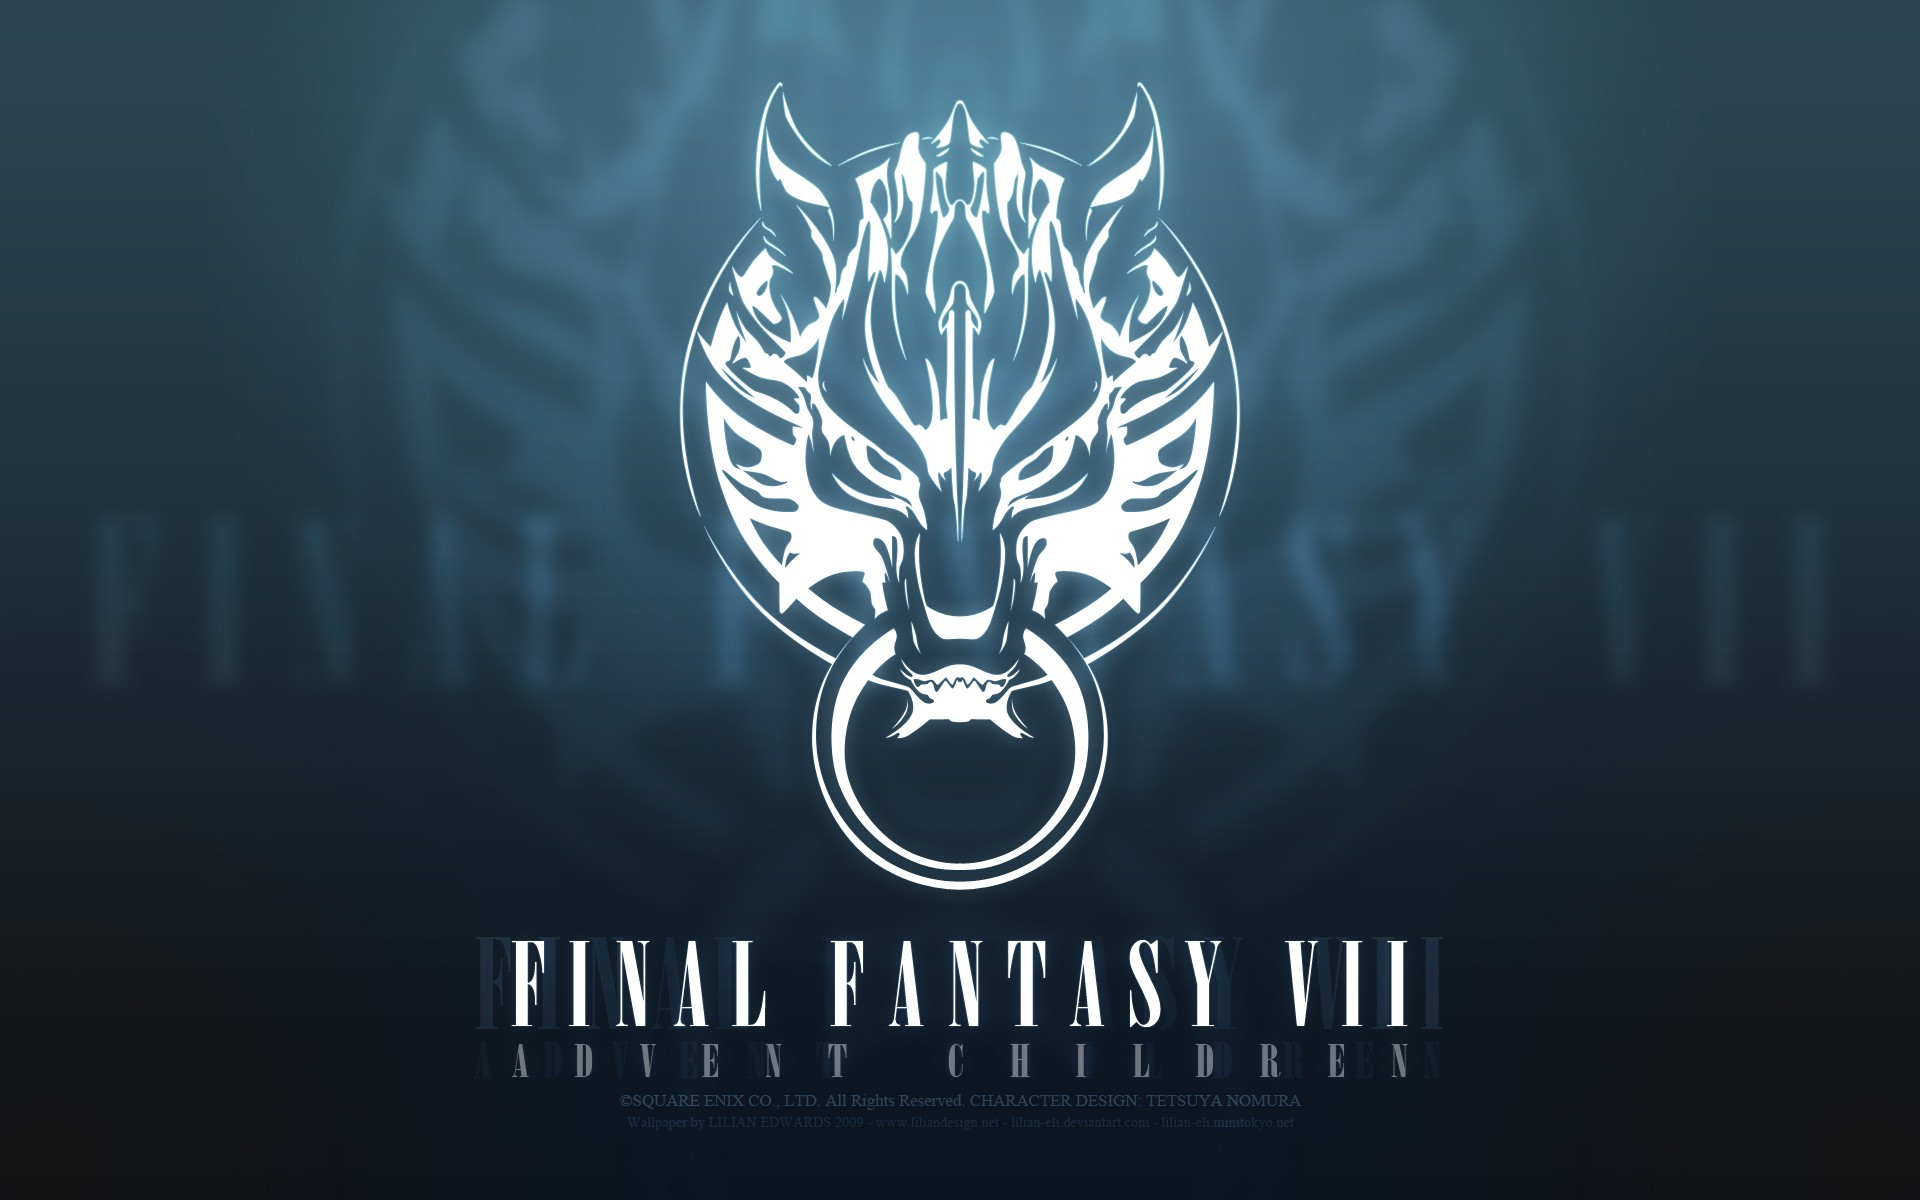 FF7 Wallpaper Download Free Wallpapers For Desktop And